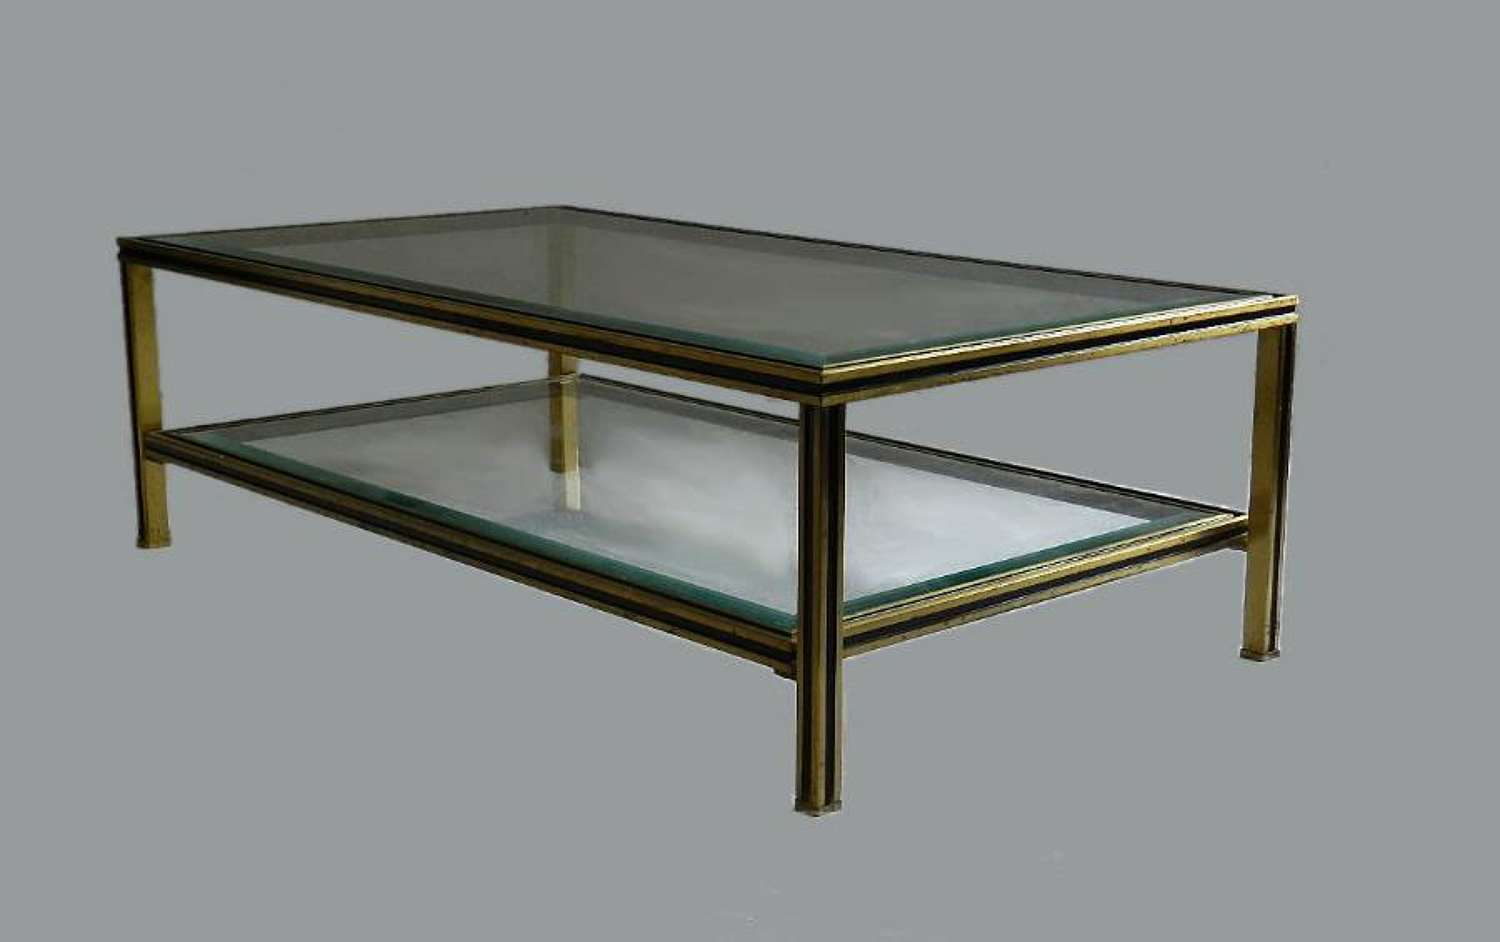 1970s French Coffee Table by Pierre Vandel Glass & Metal